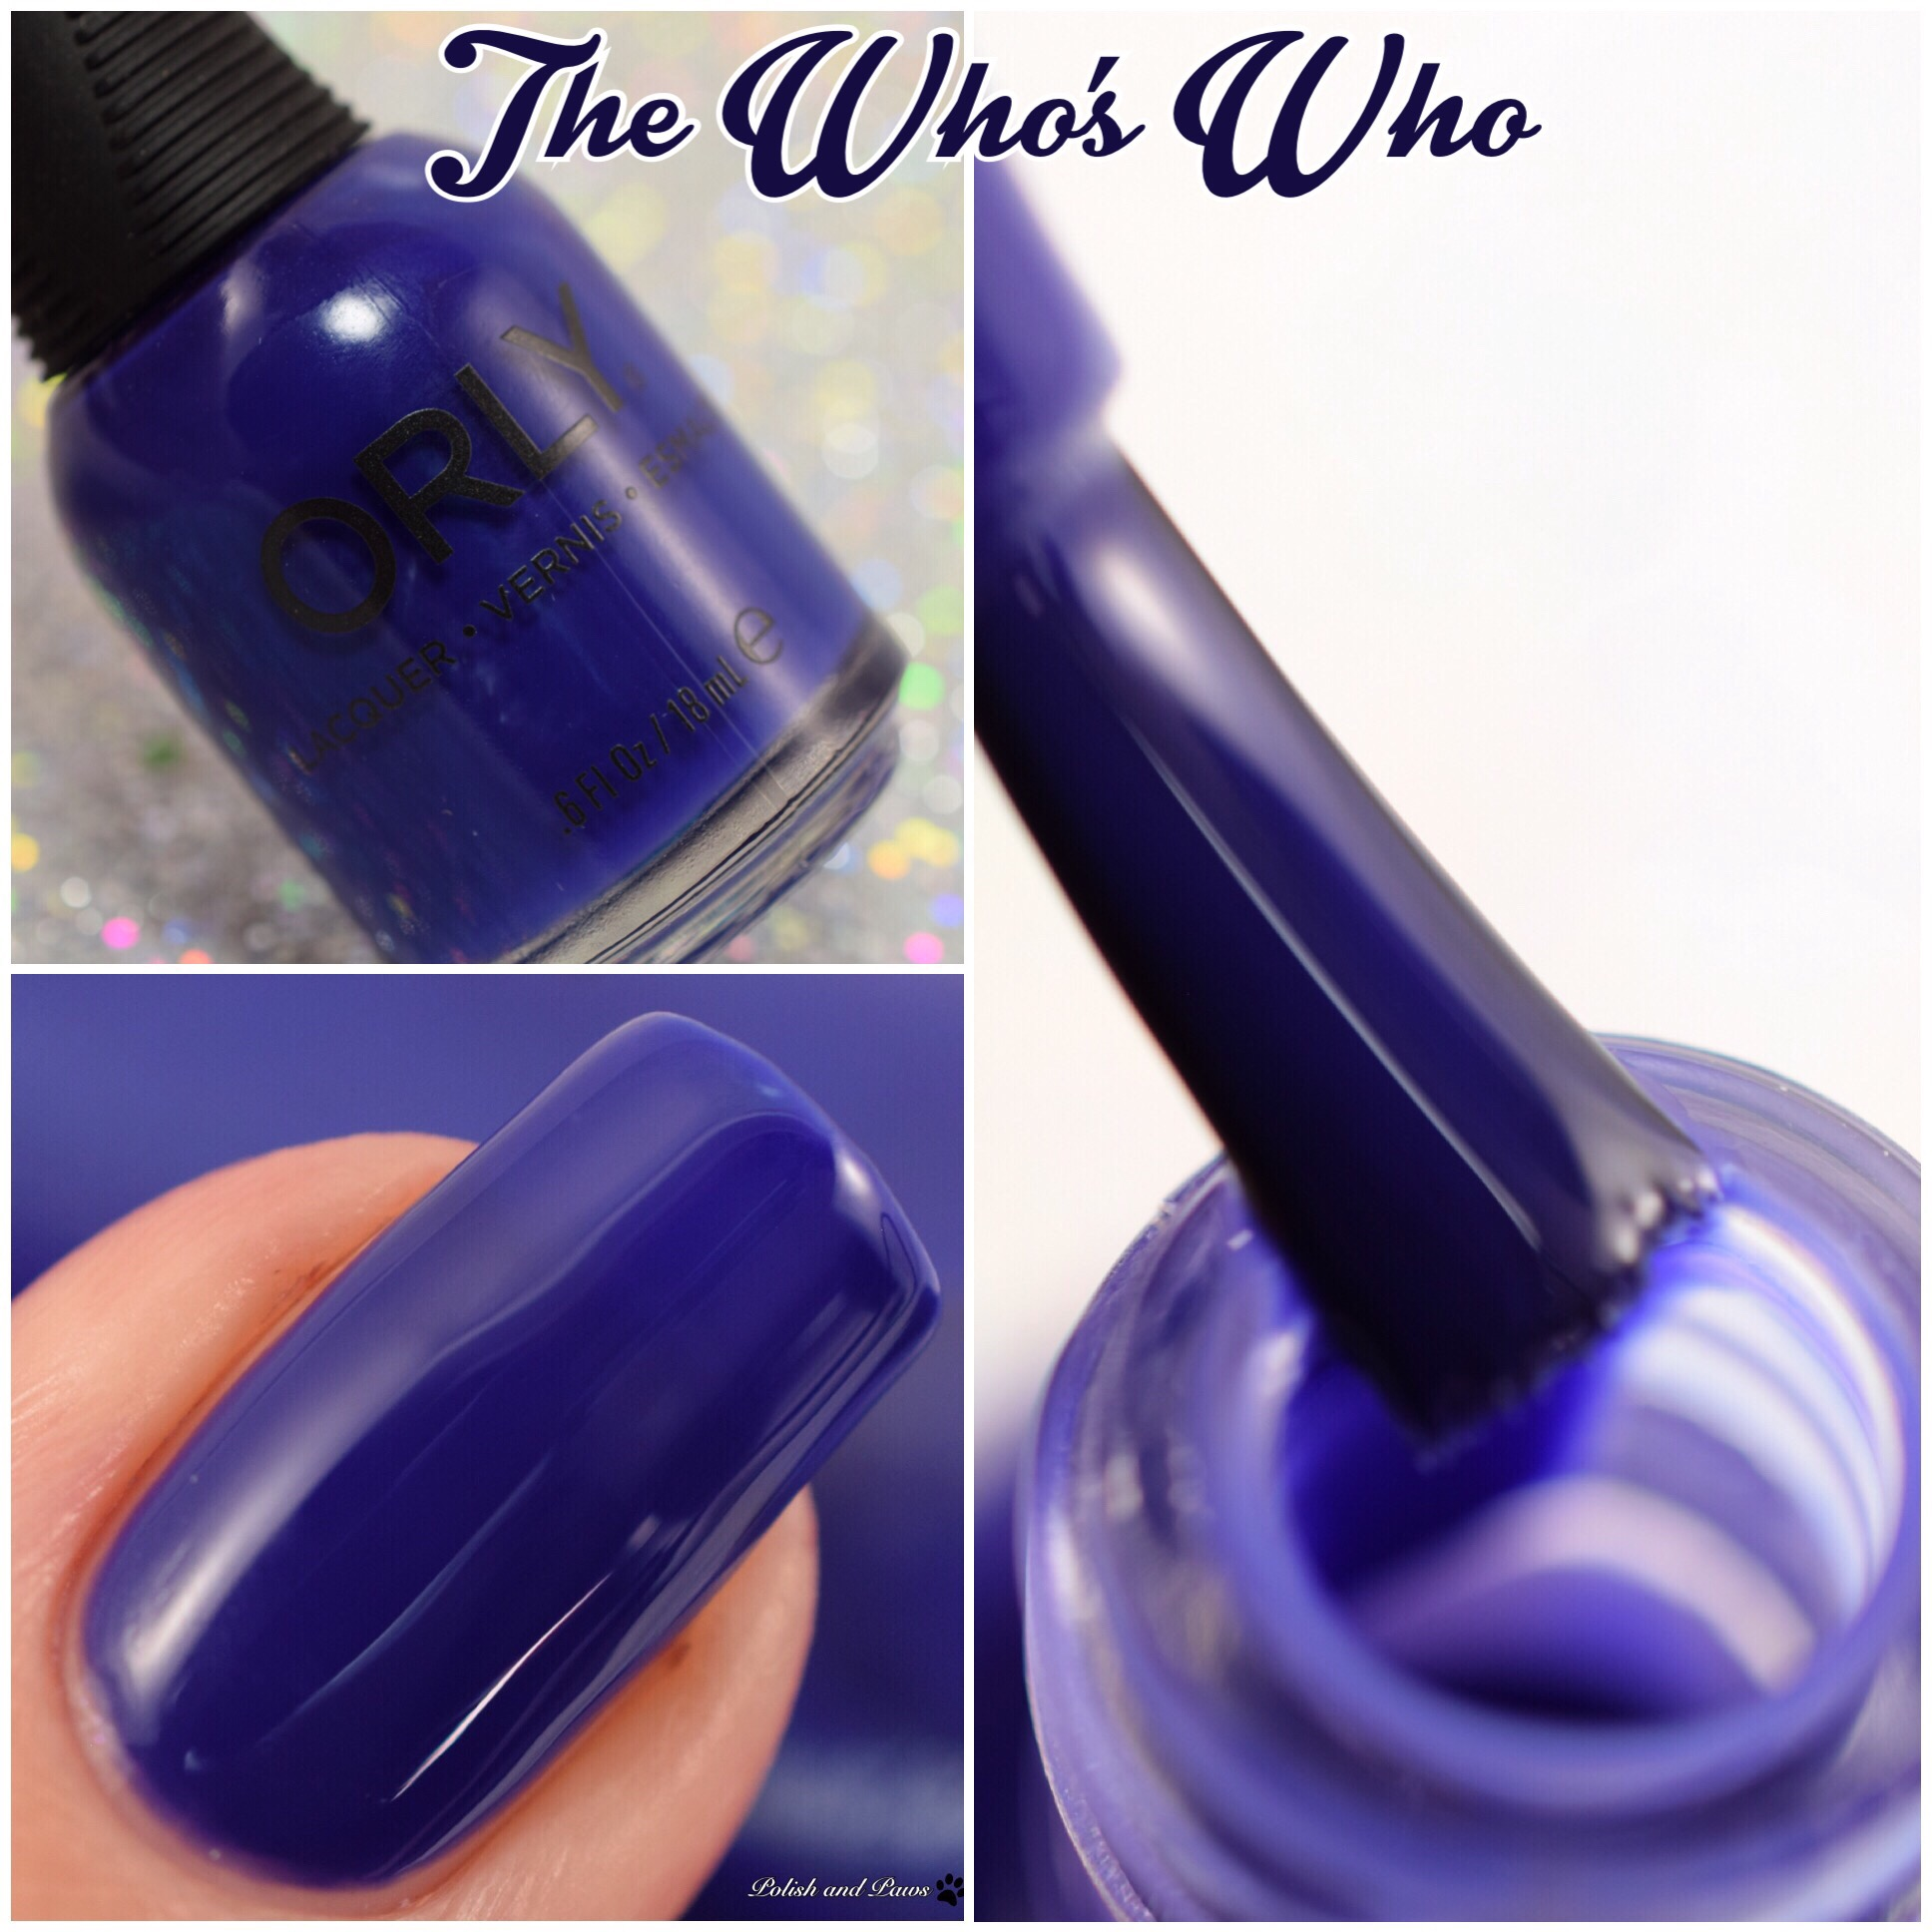 Orly The Who's Who